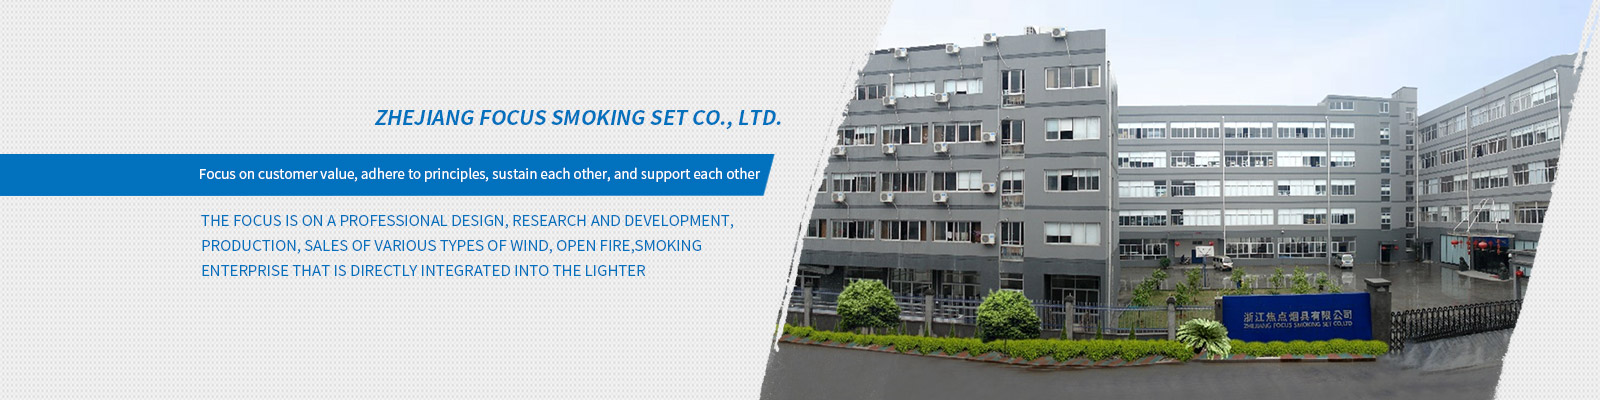 Zhejiang Focus Smoking Set Co., Ltd.